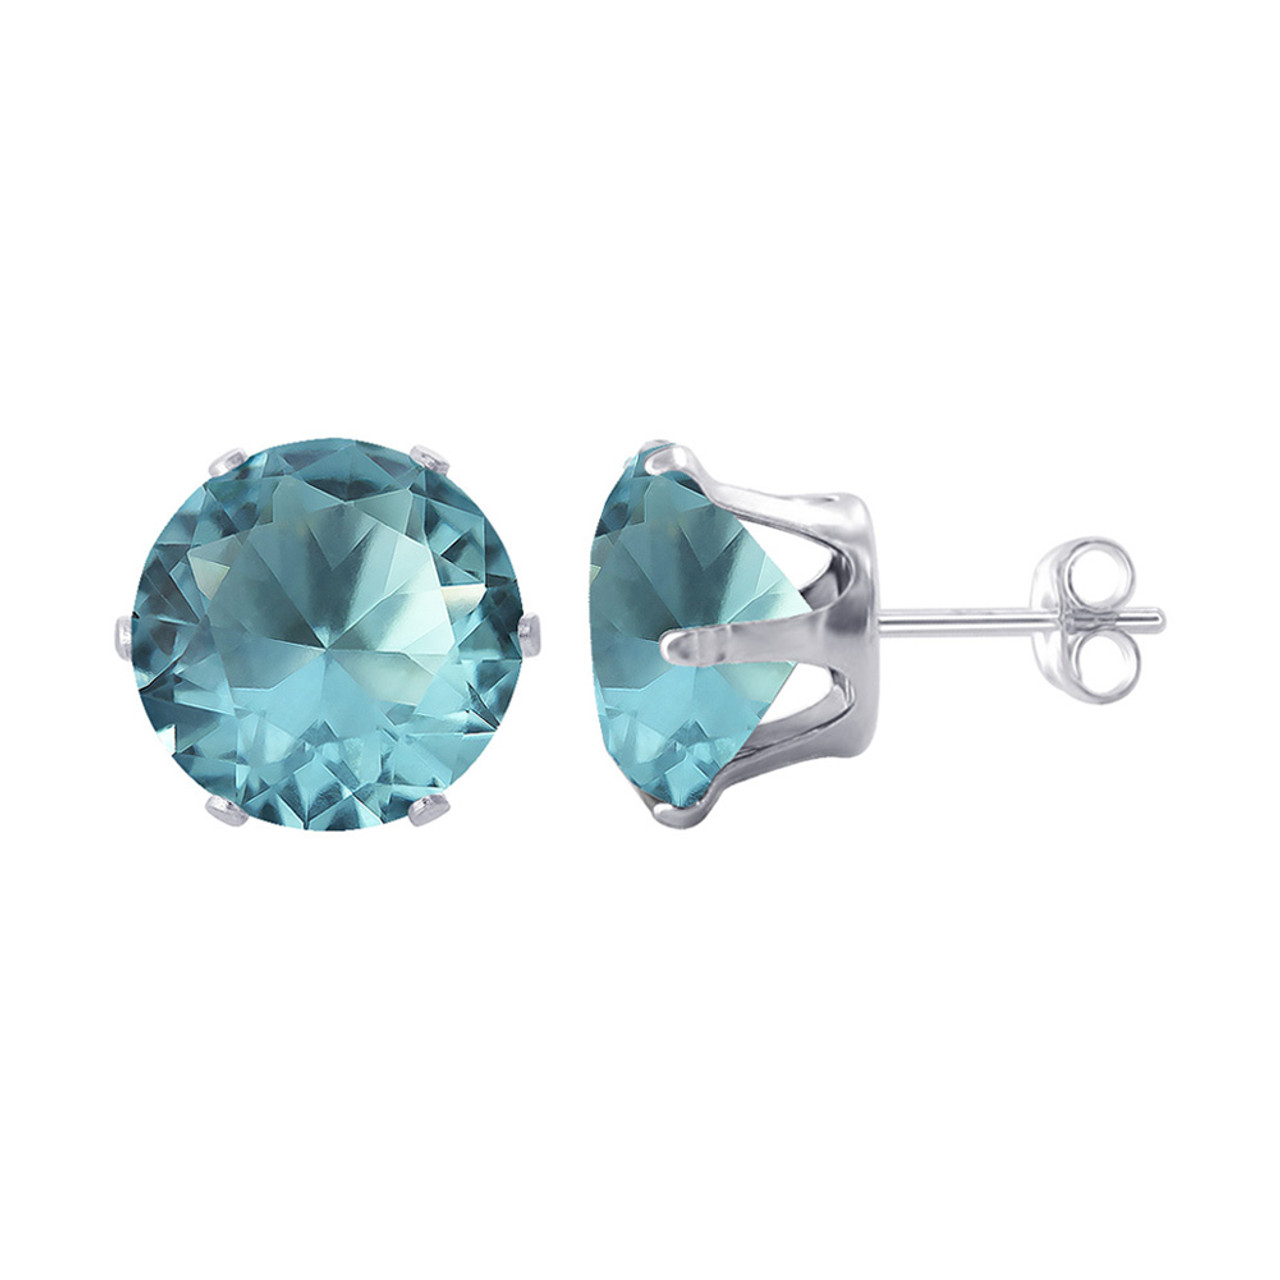 7mm Round Aqua Color Cubic Zirconia Stud Earrings